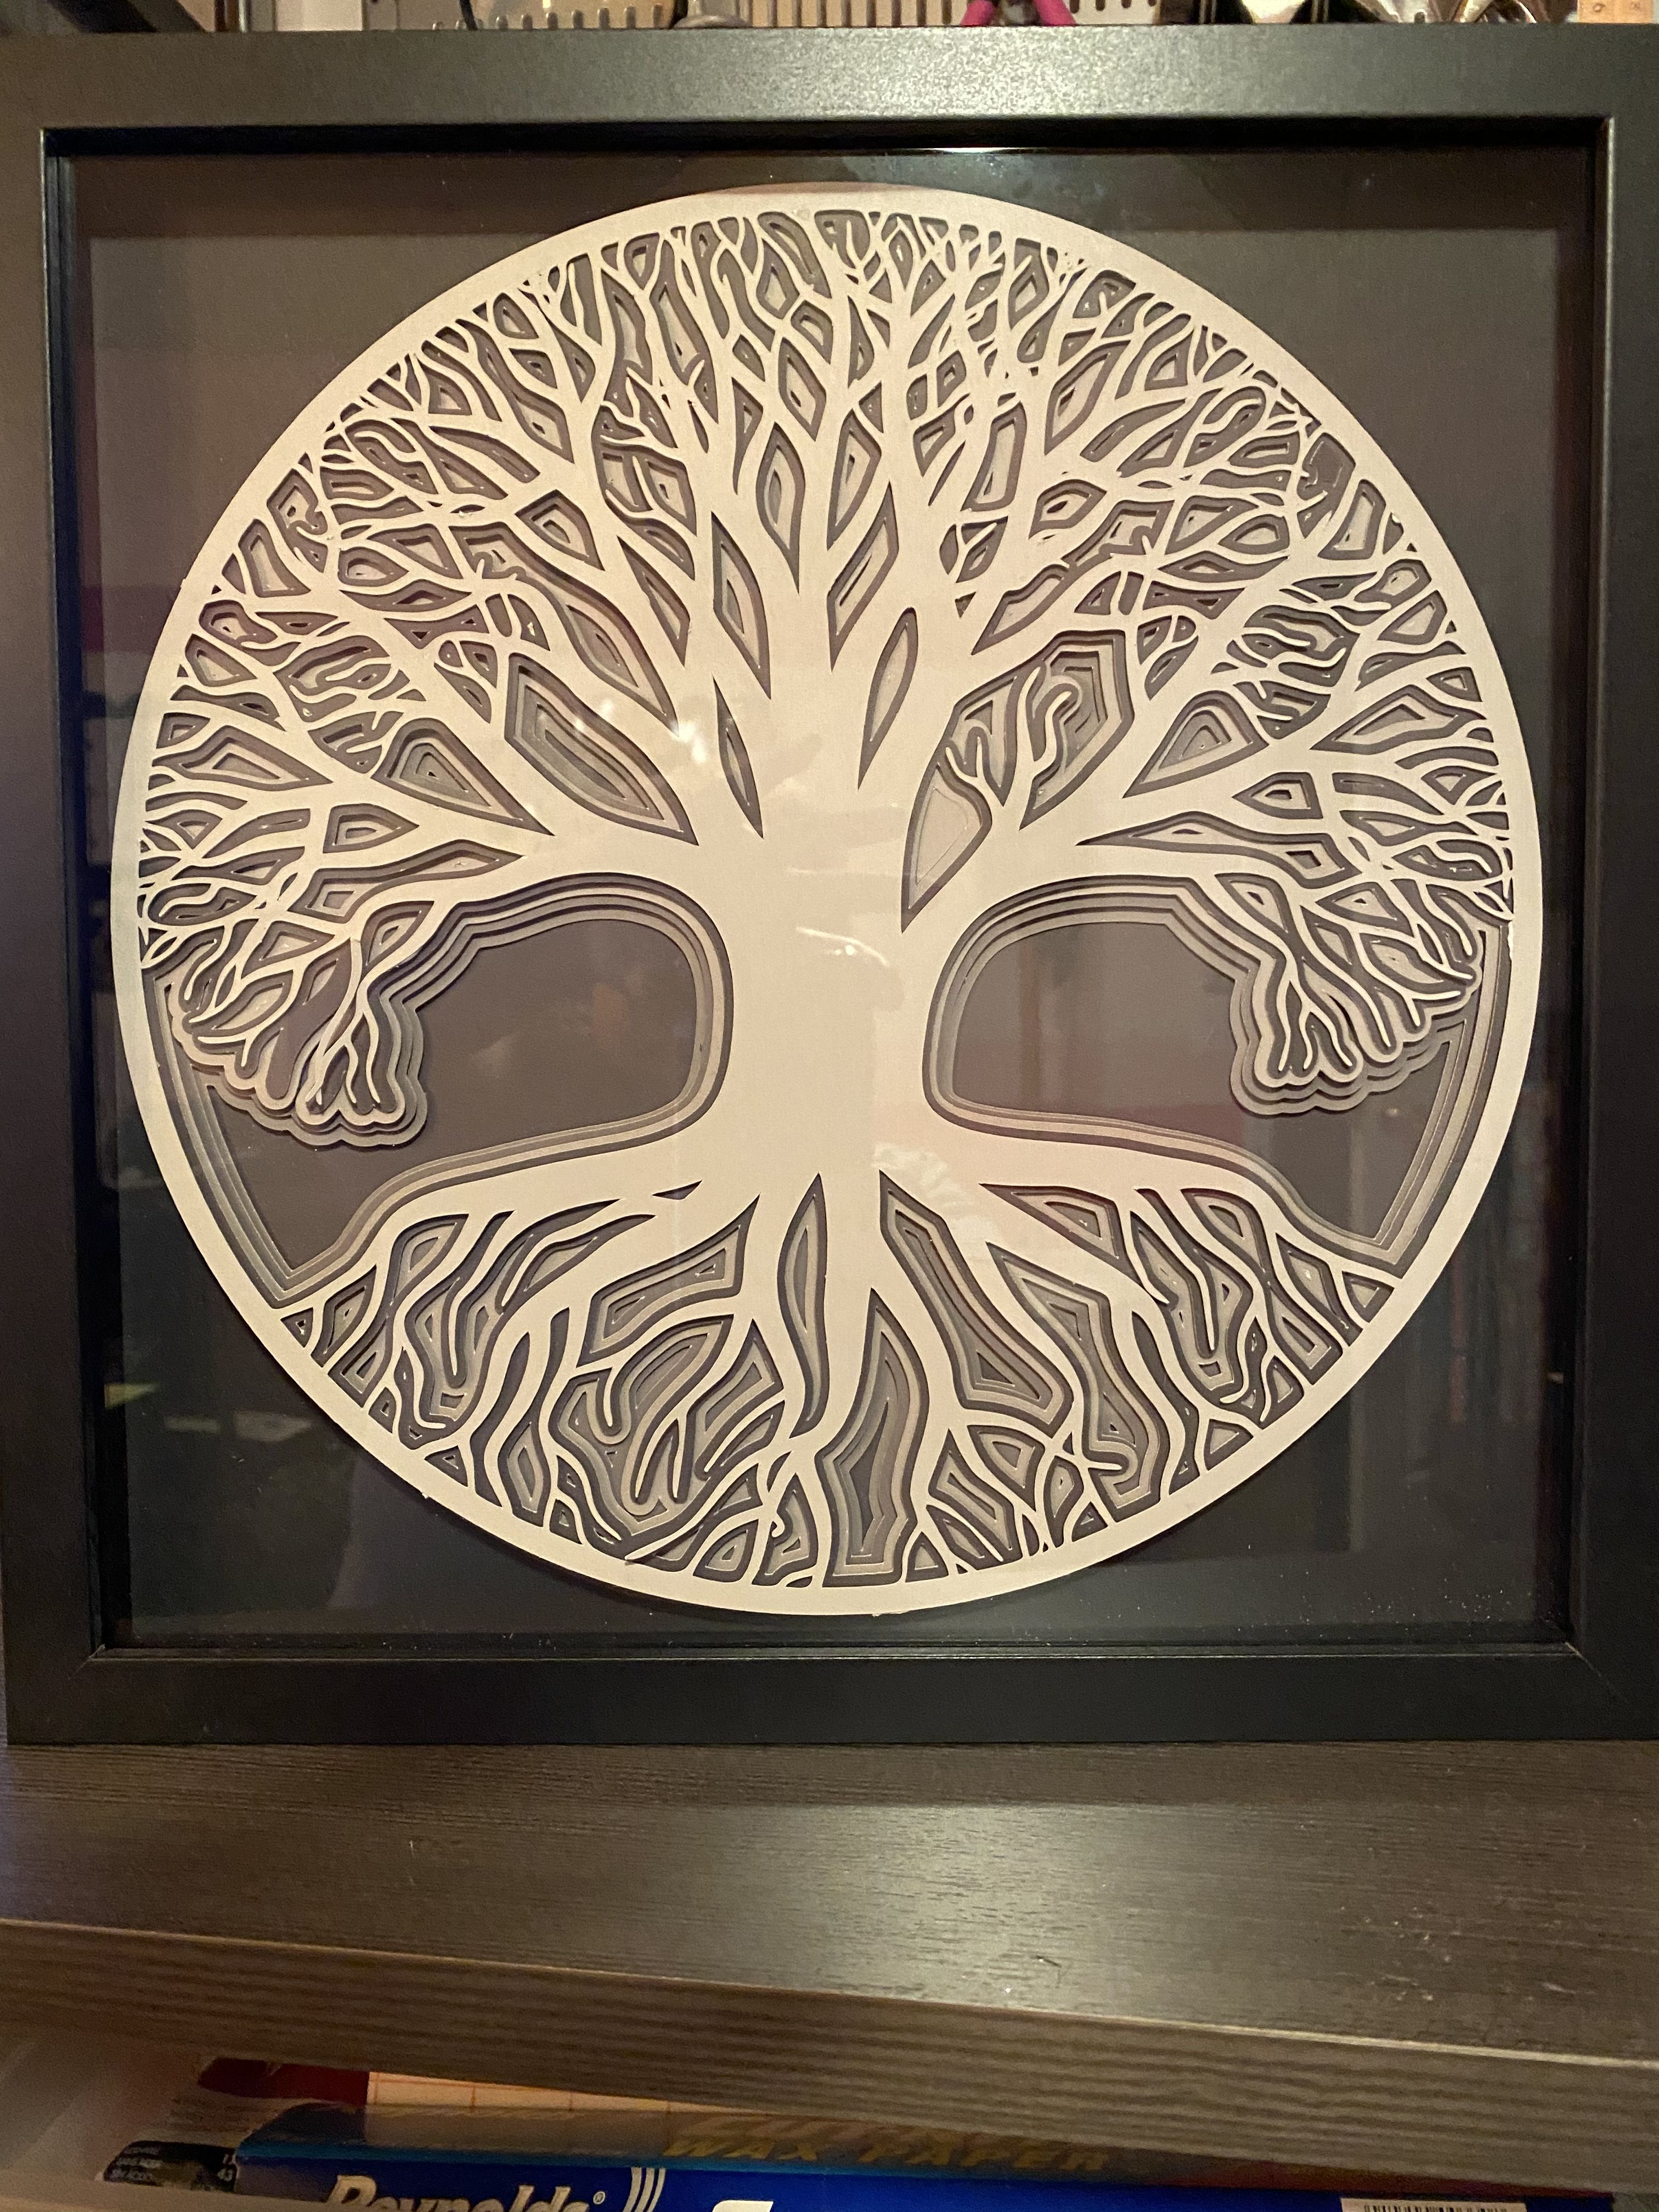 Pictures Of The Tree Of Life